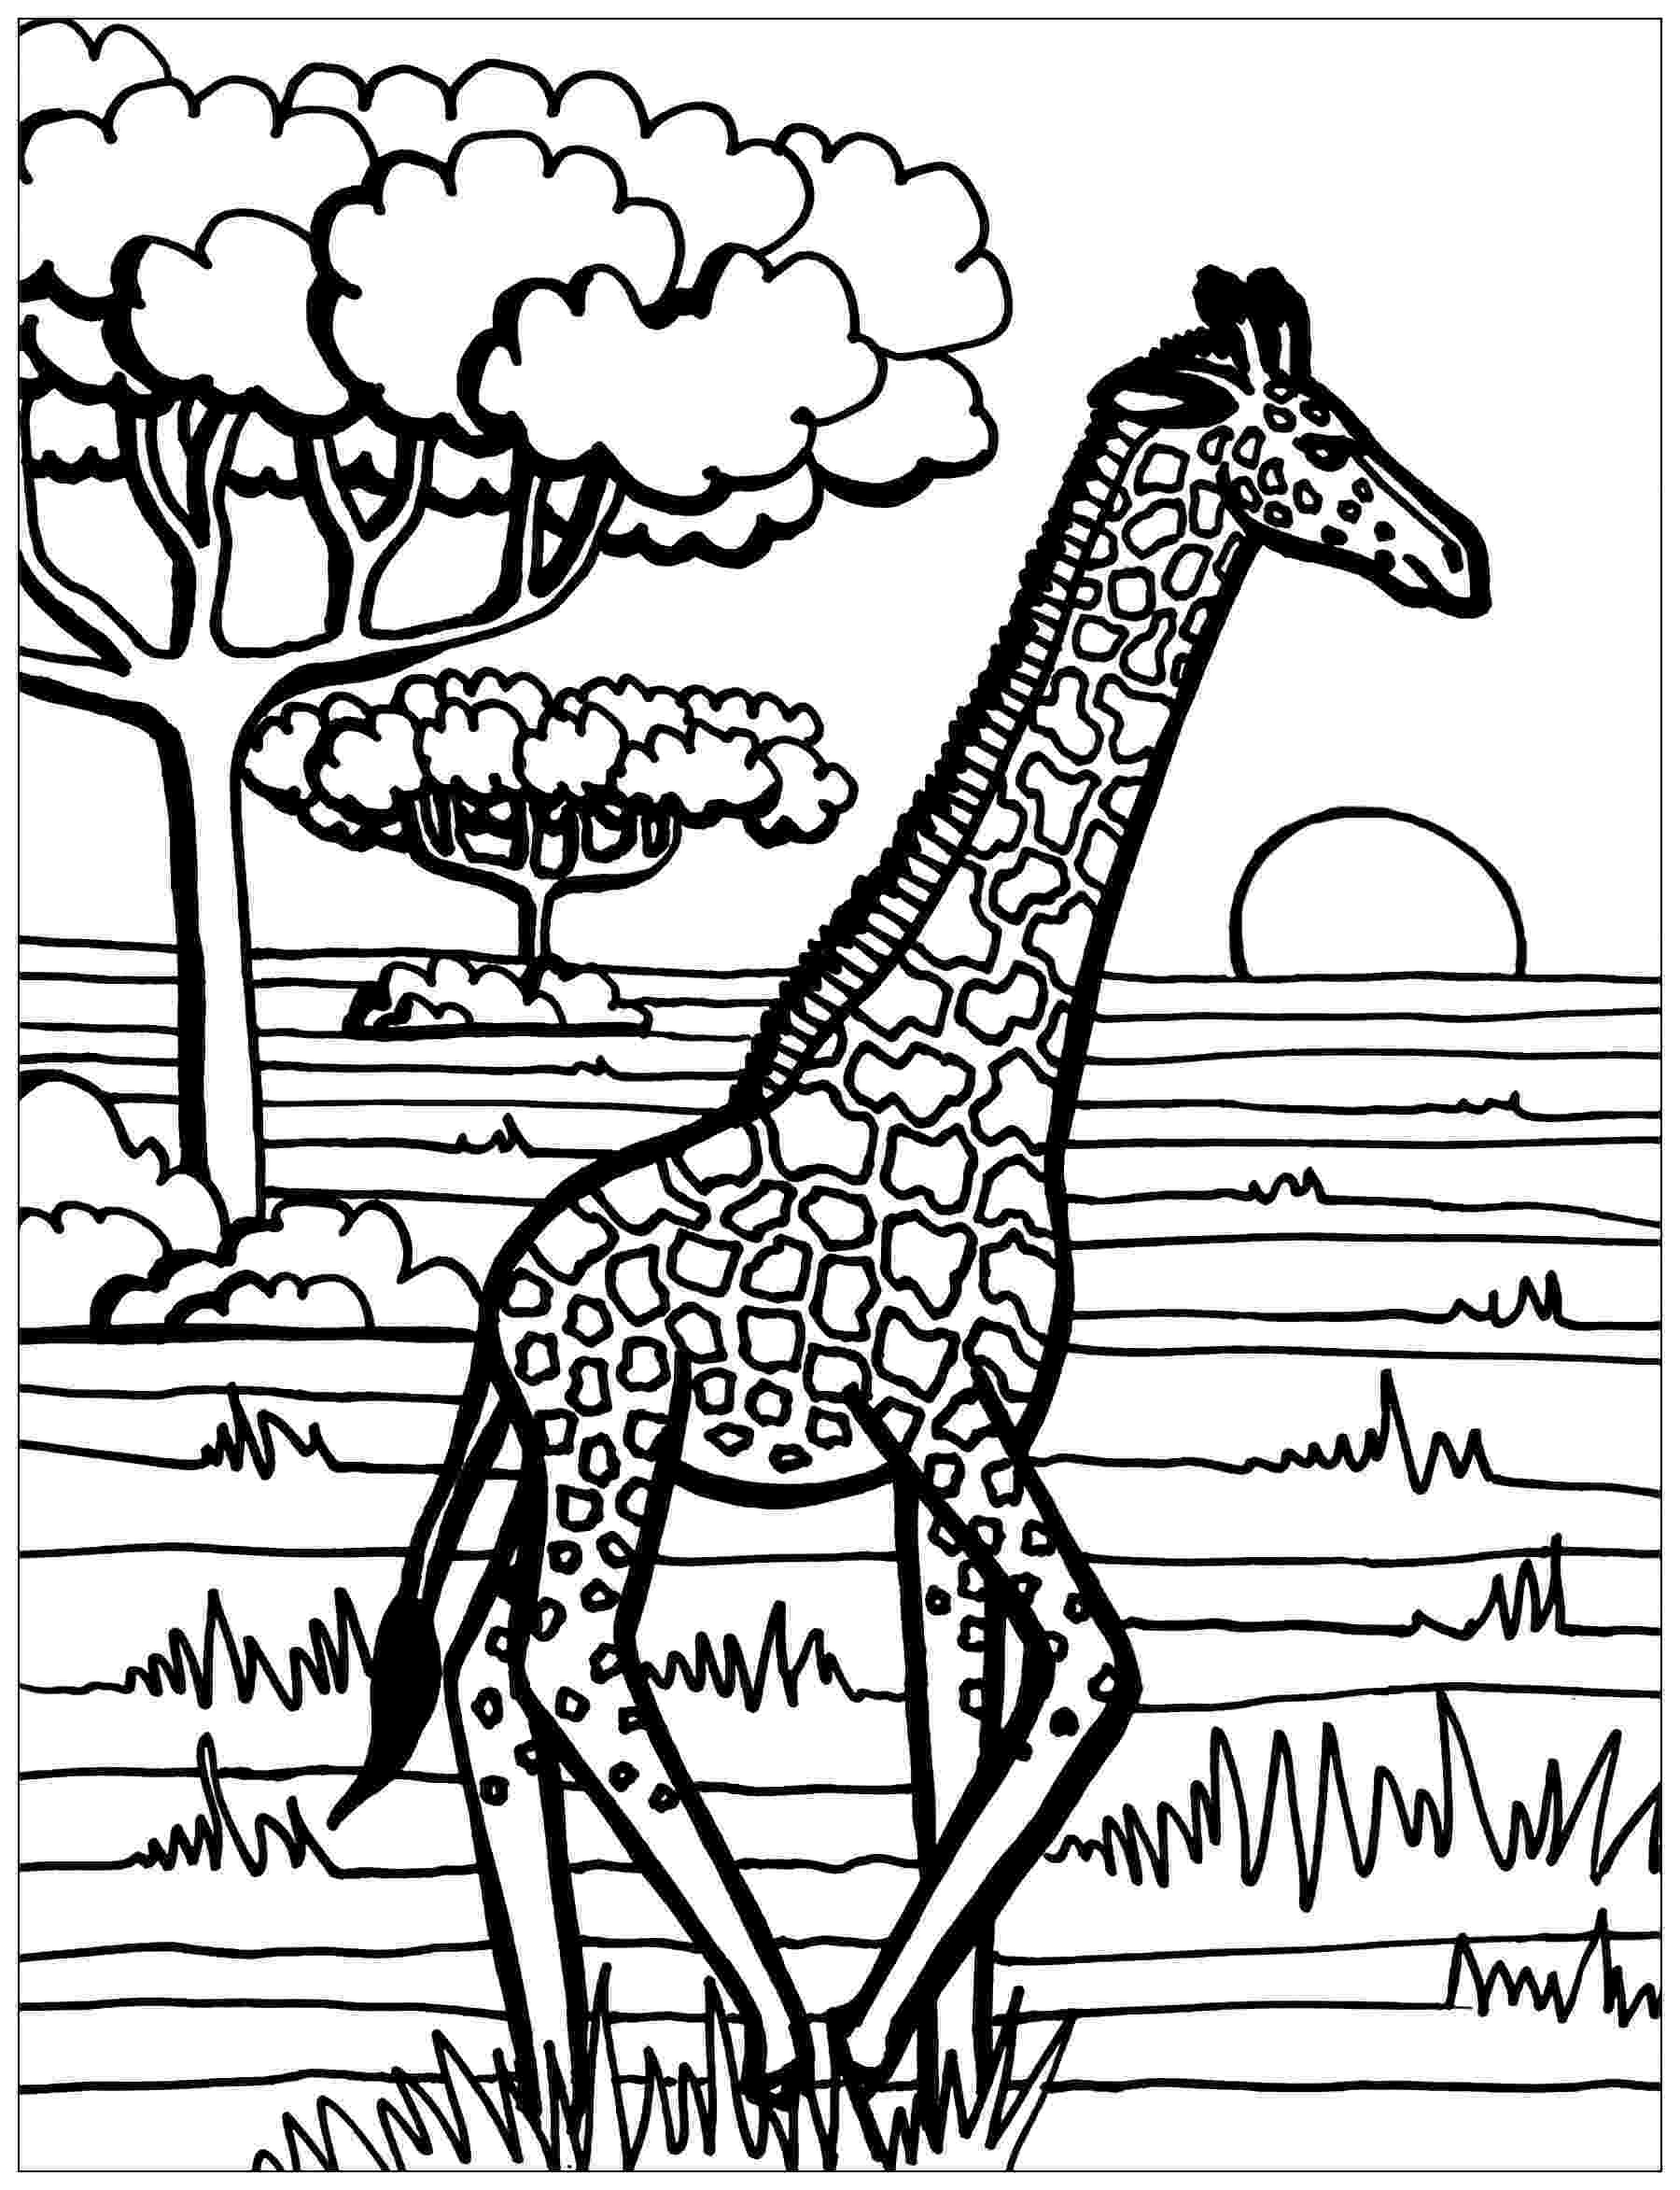 coloring page giraffe giraffe coloring pages 2 coloring pages to print giraffe page coloring